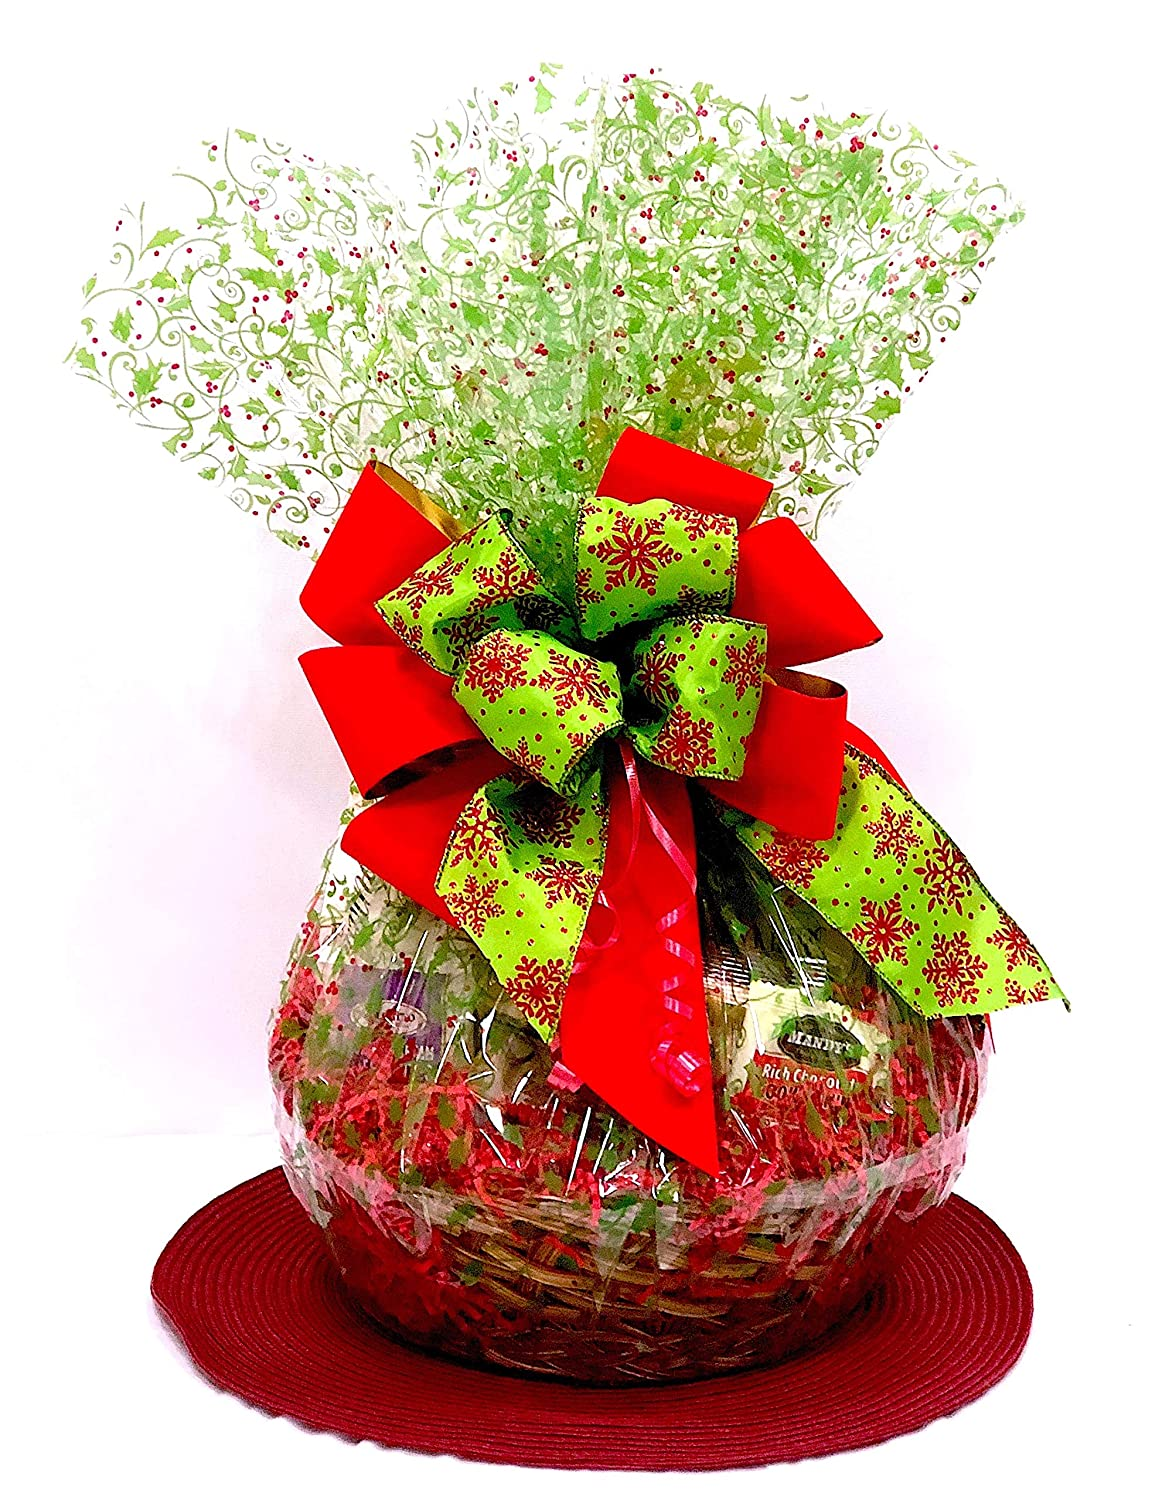 Amazon Com Chocolate And Gourmet Corporate Gift Baskets Holly Berry 84 99 Premium Plus Grocery Gourmet Food